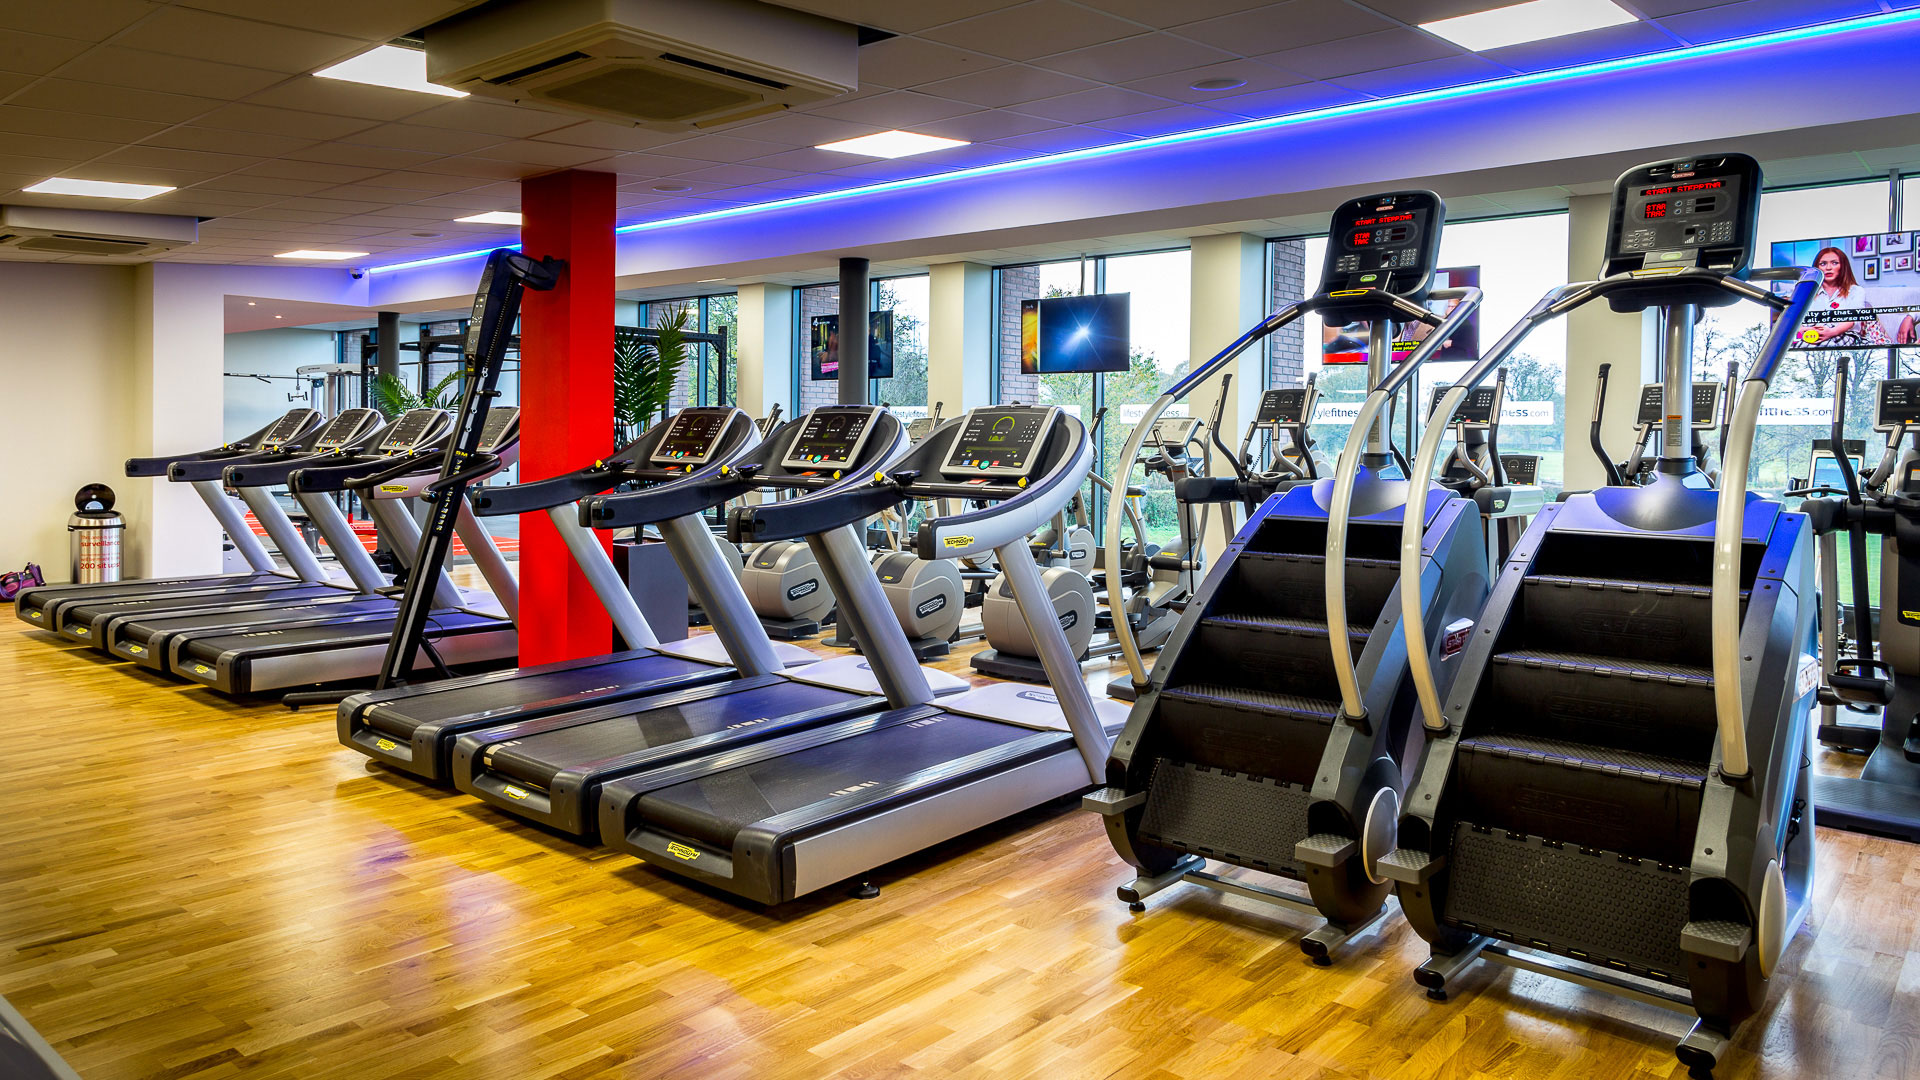 Get To Know About The Benefits Of Investing Your Money In Buying Quality Home Gym Equipment!